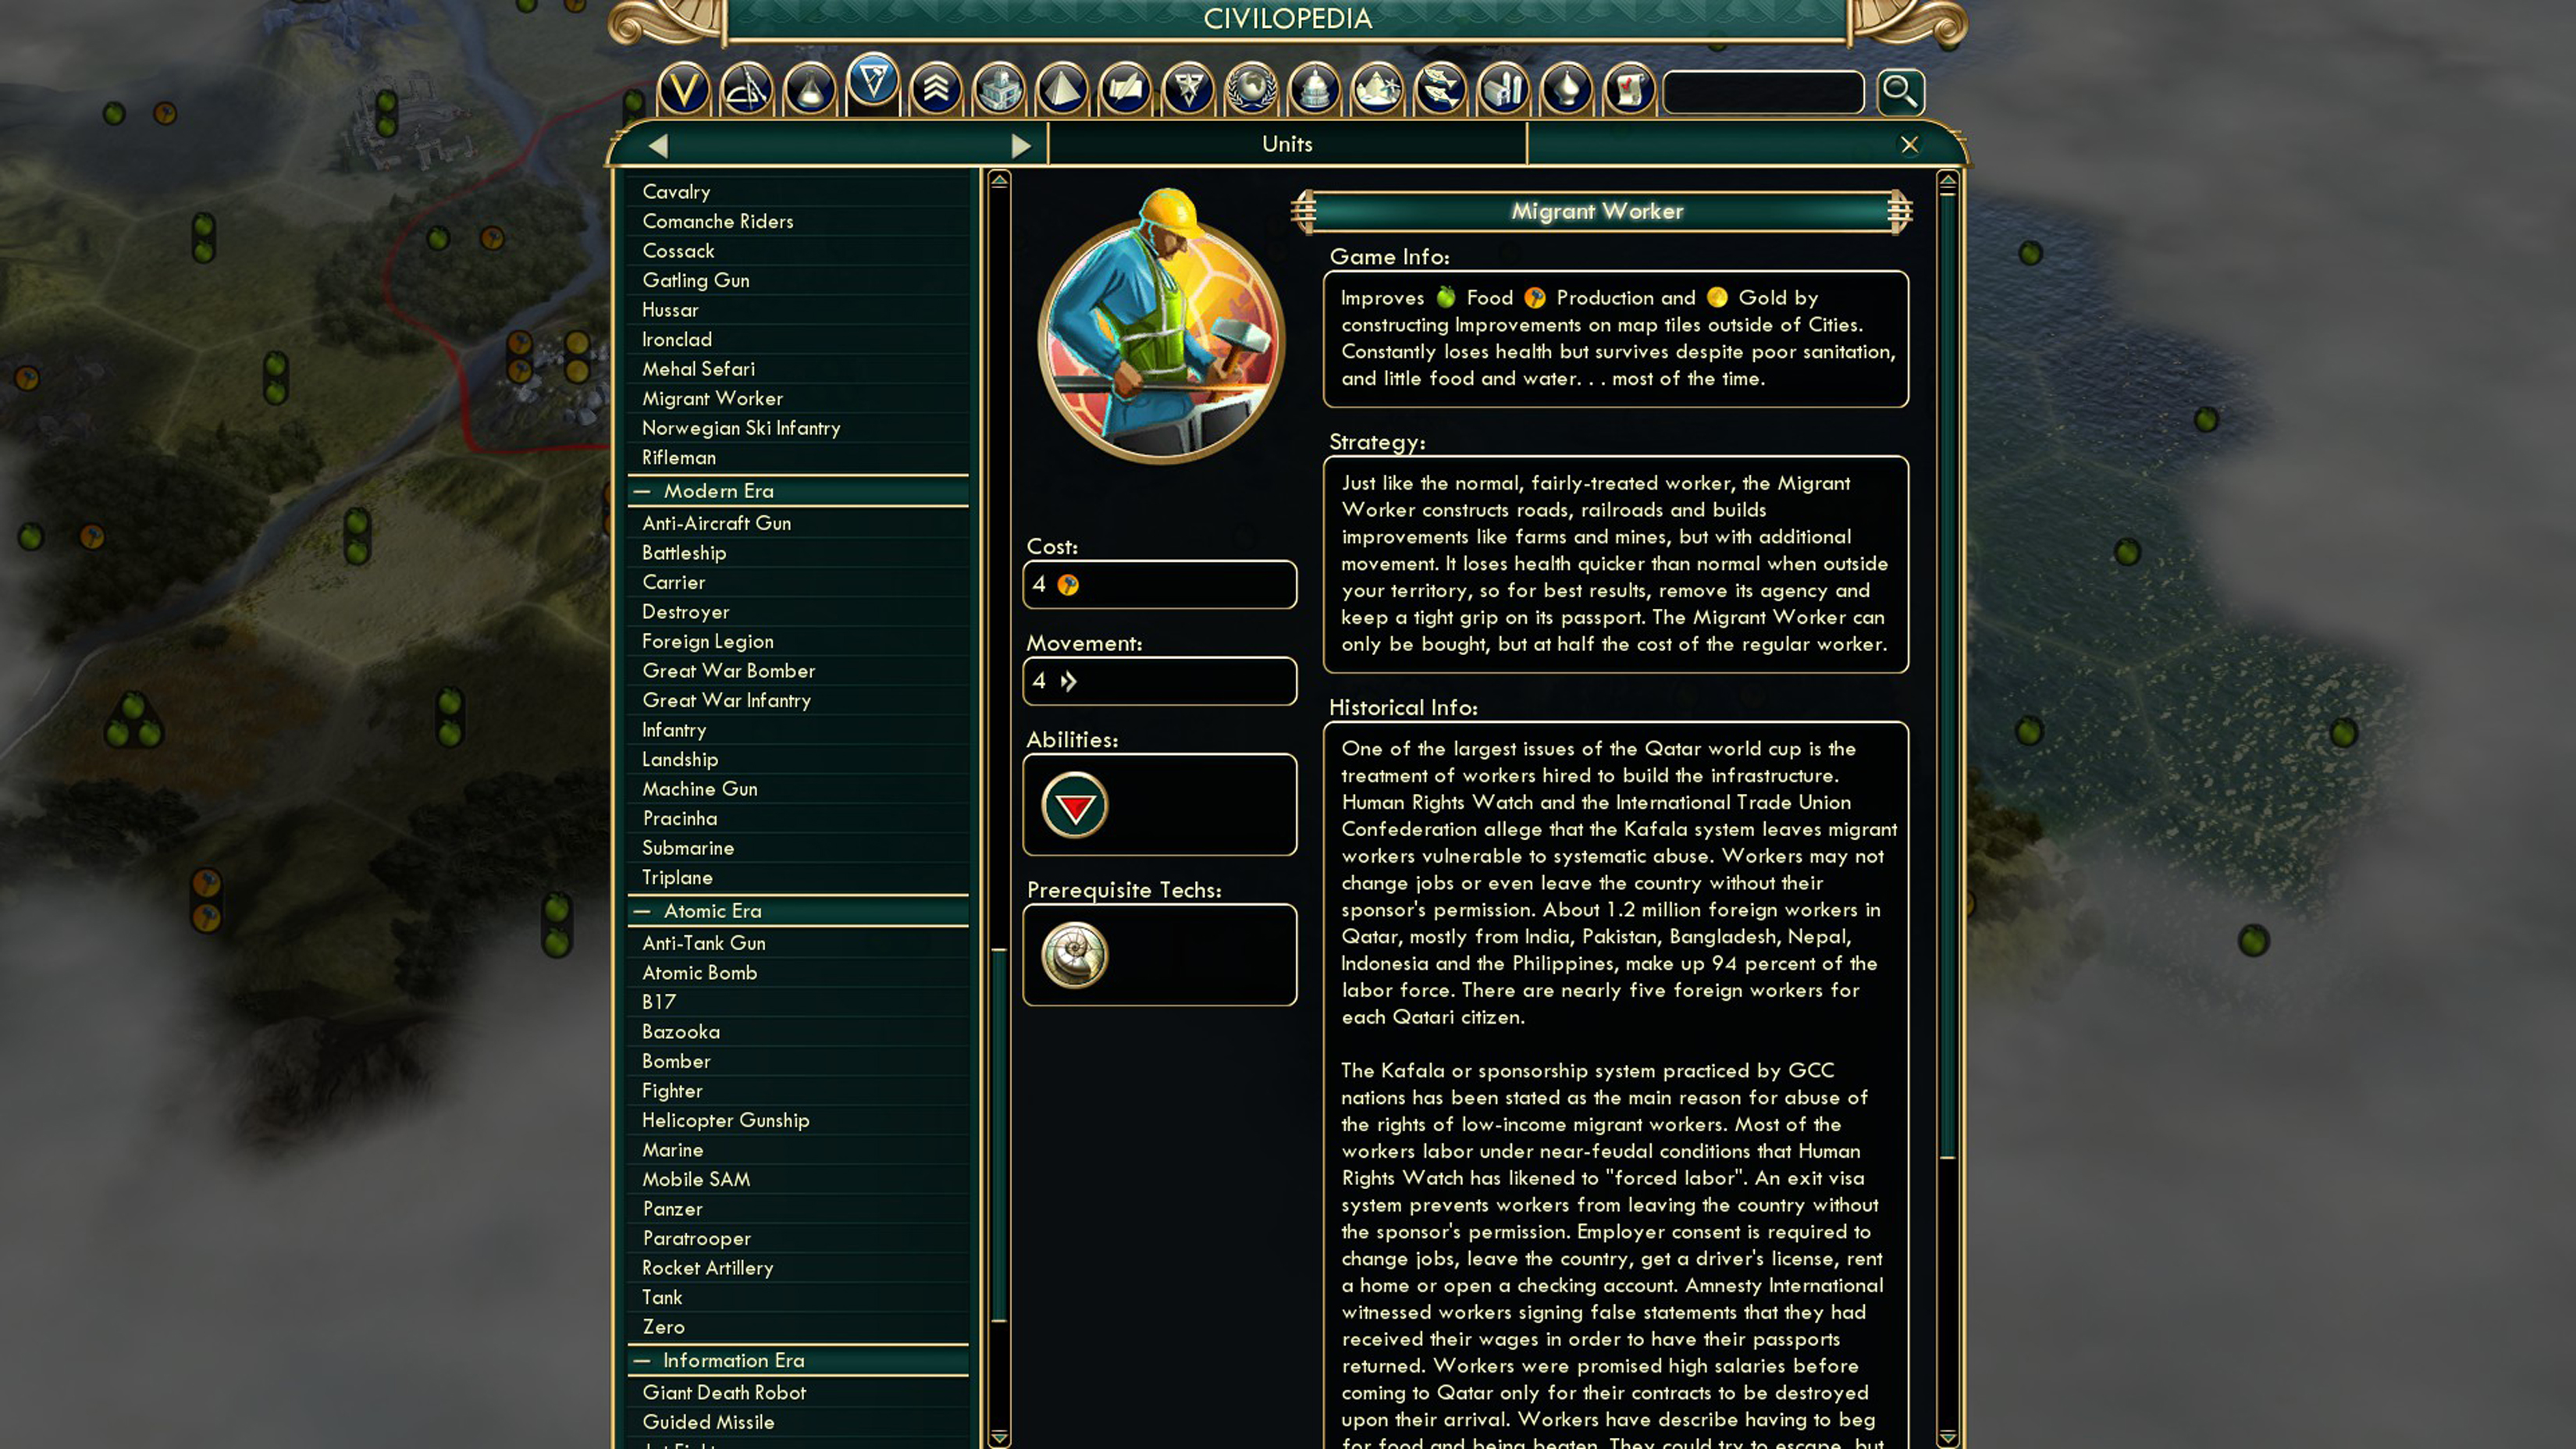 """Civilization V, developed by Firaxis Games, 2010. """"FIFA World Cup Host"""" mod created by Steph. Courtesy of the Internet."""